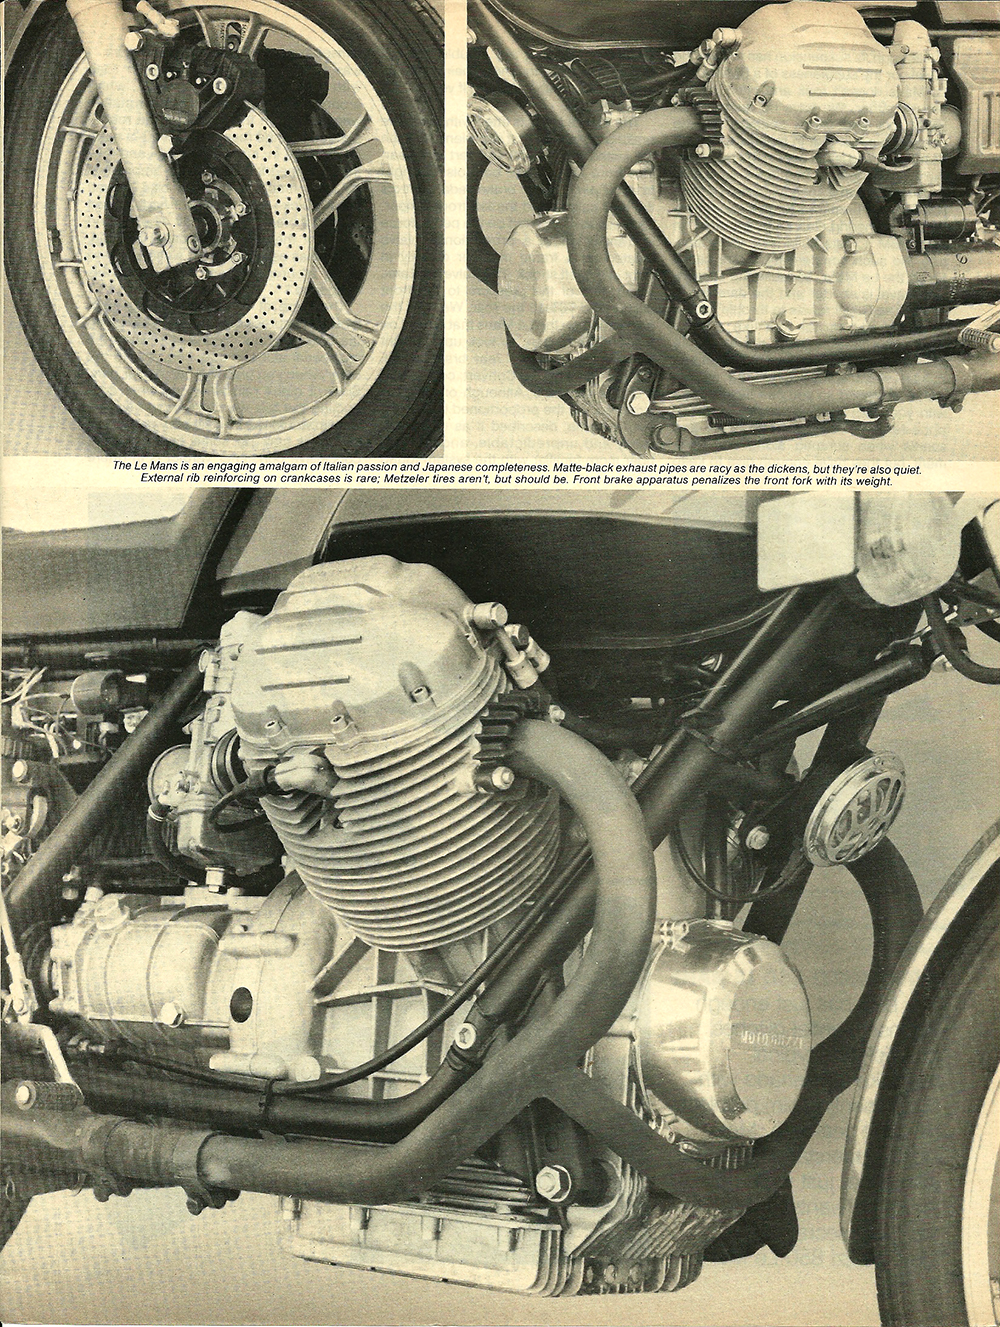 1977 Moto Guzzi 850 LeMans road test 04.jpg